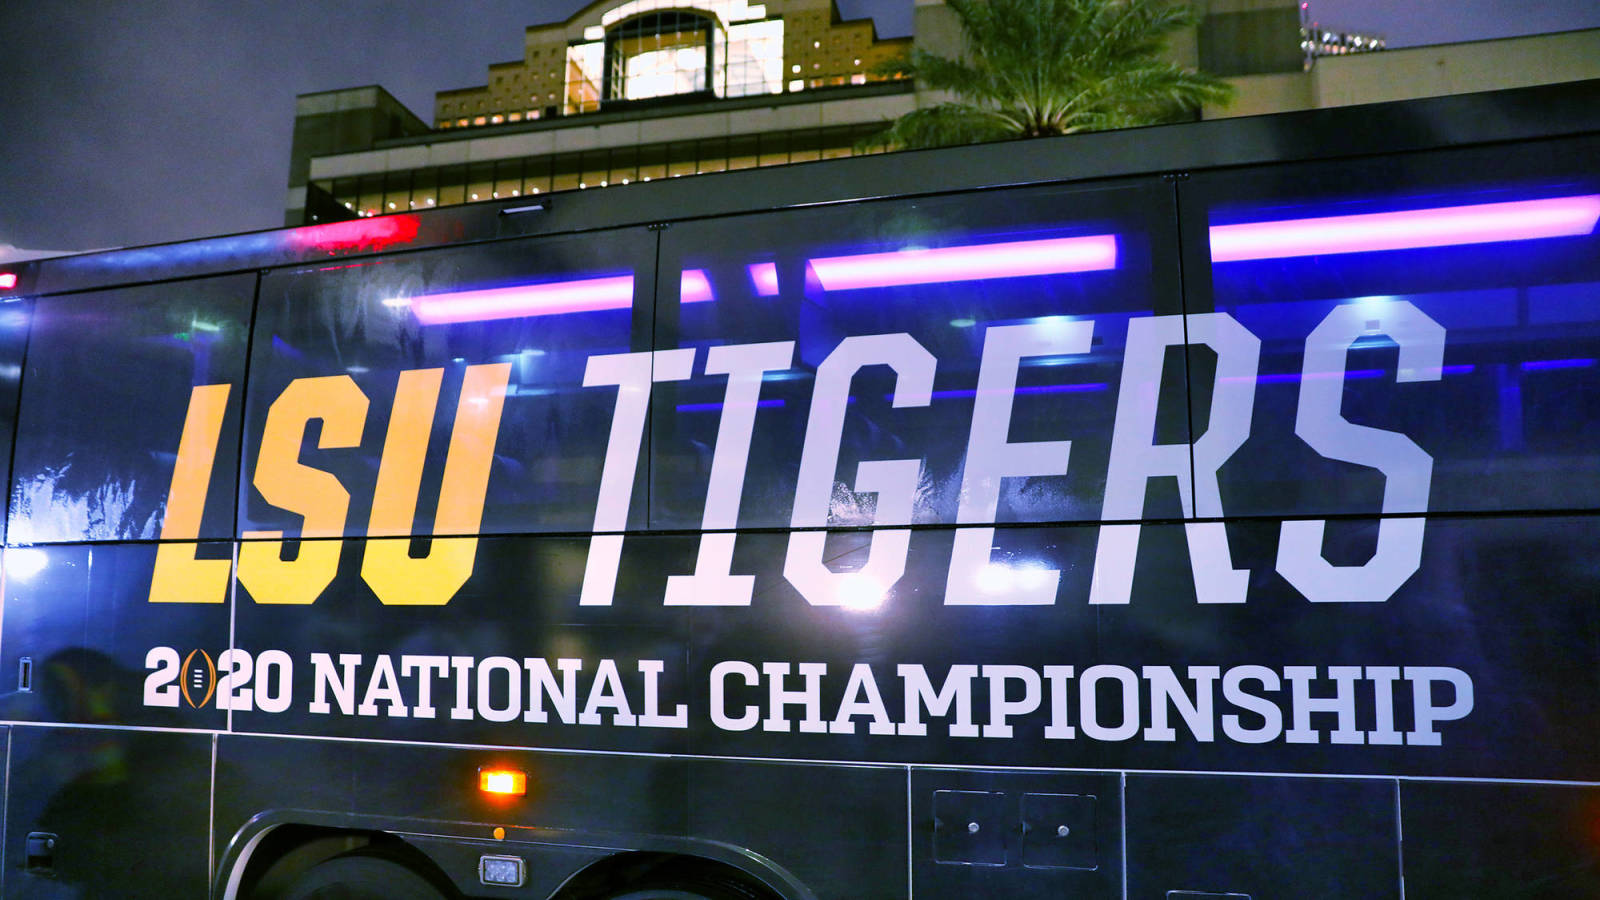 Lsu Cancels Classes On Monday And Tuesday For National Title Game Yardbarker